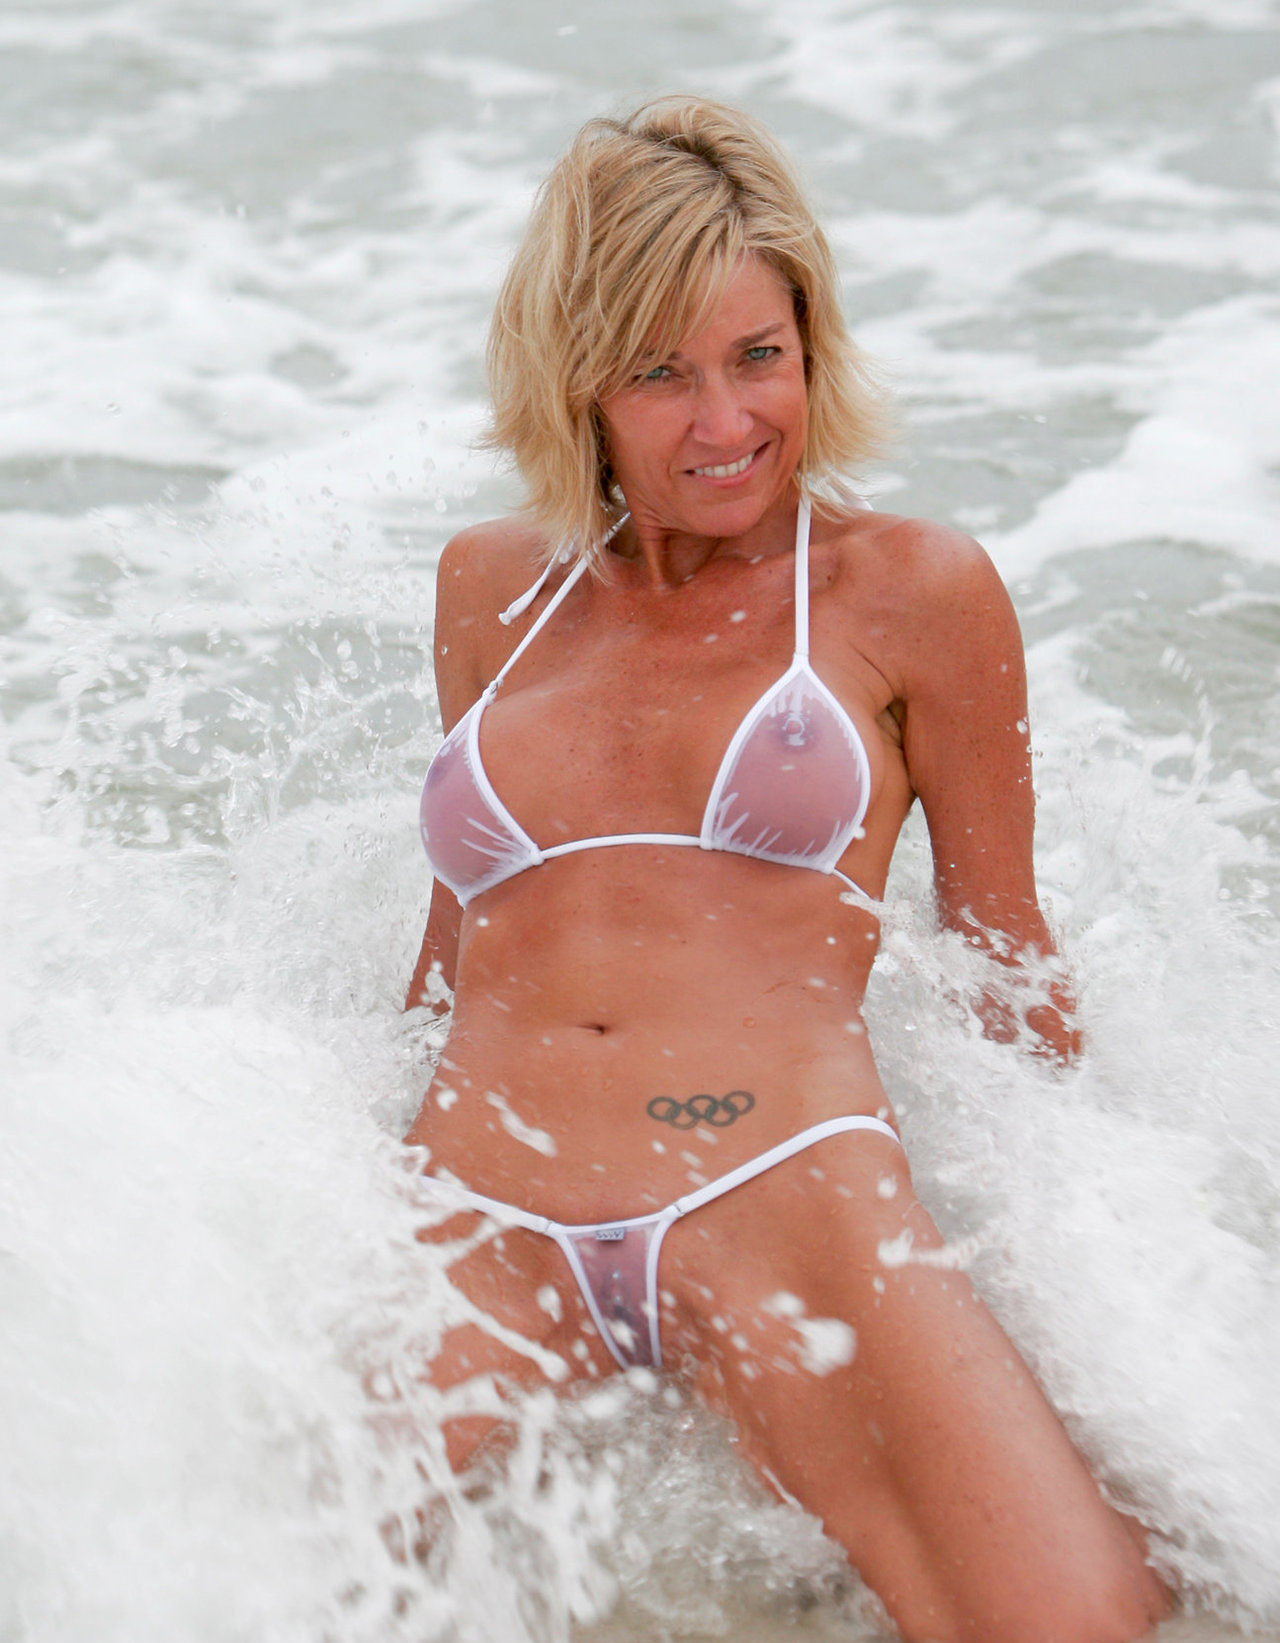 milf wet in a see through bikini at the beach